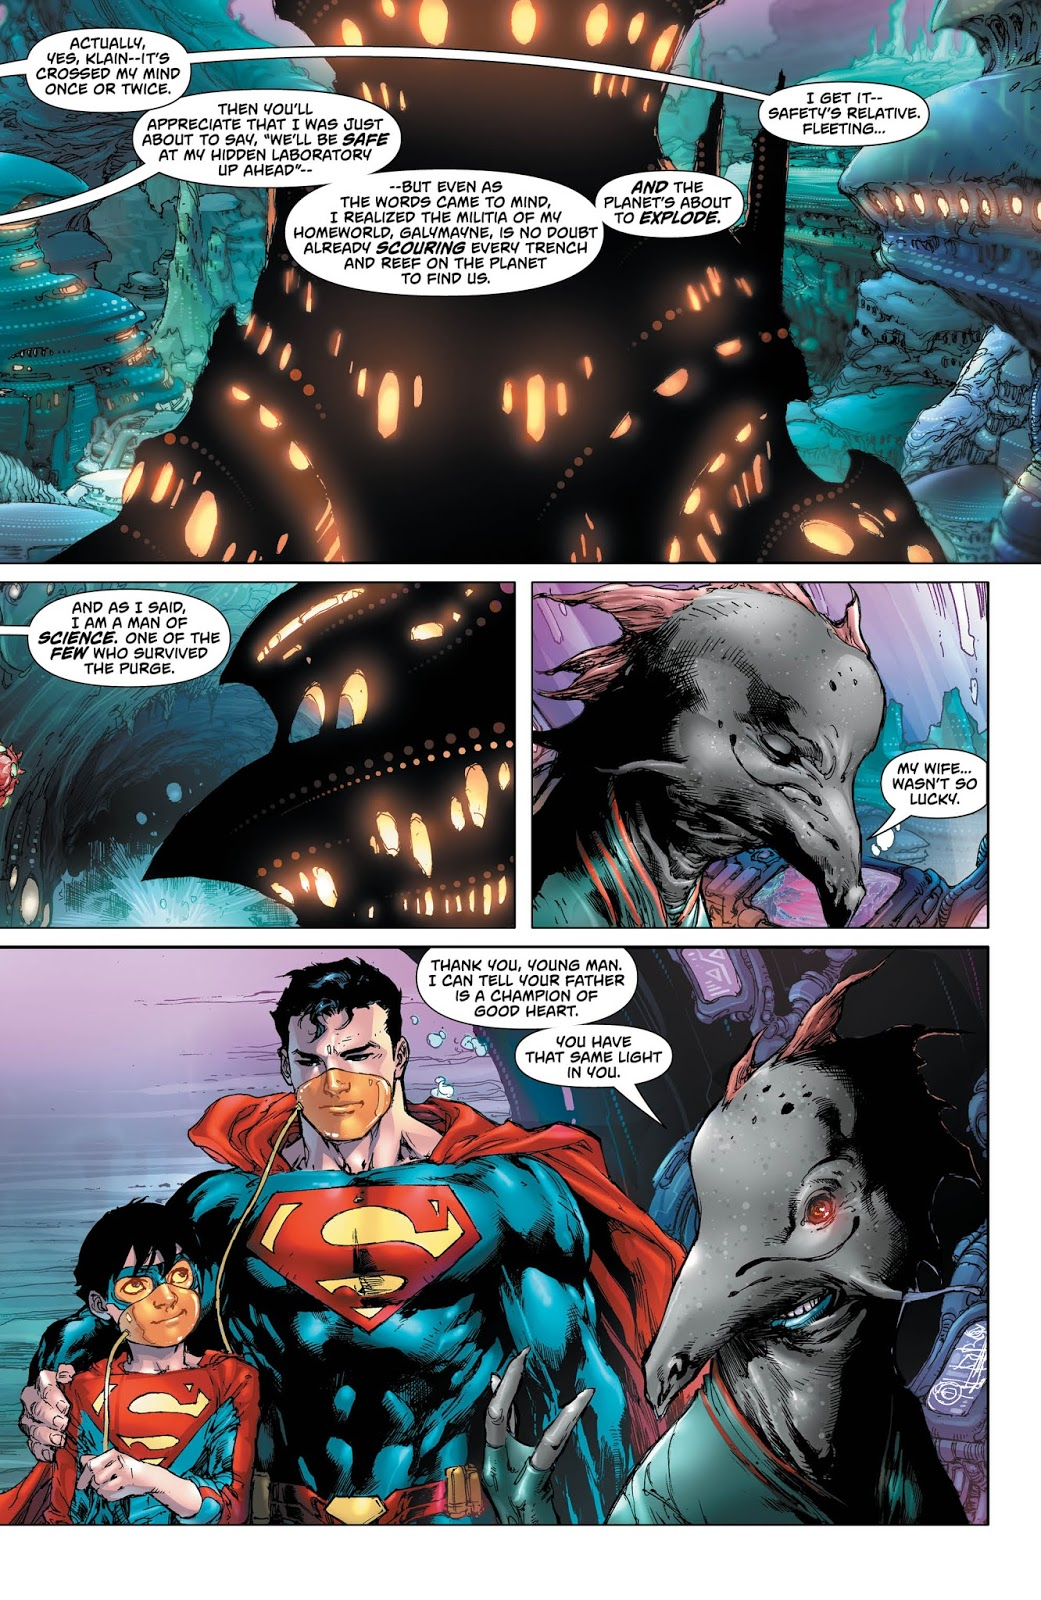 Weird Science DC Comics: Superman #41 Review and *SPOILERS* on